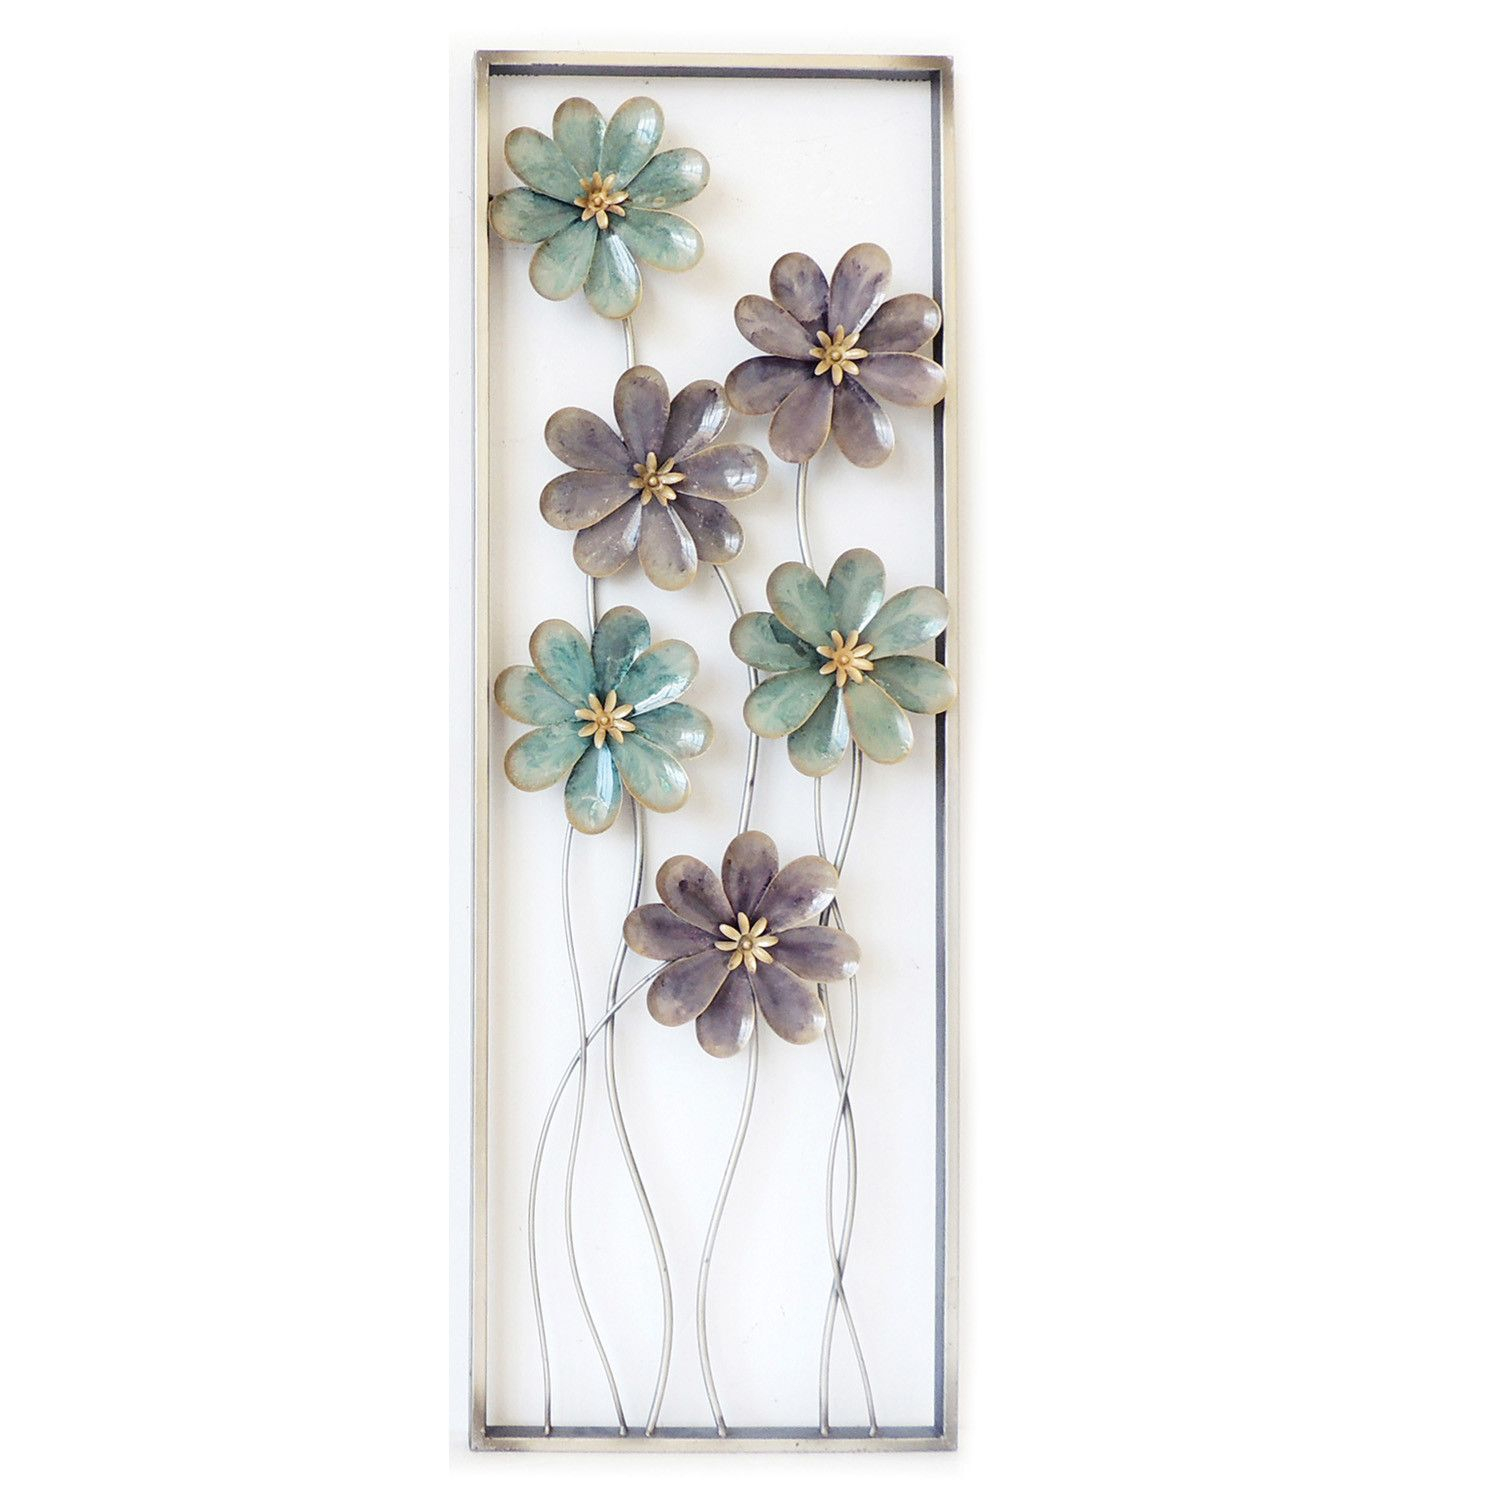 2020 6 Flowers On Stem Wall Decor (View 7 of 20)